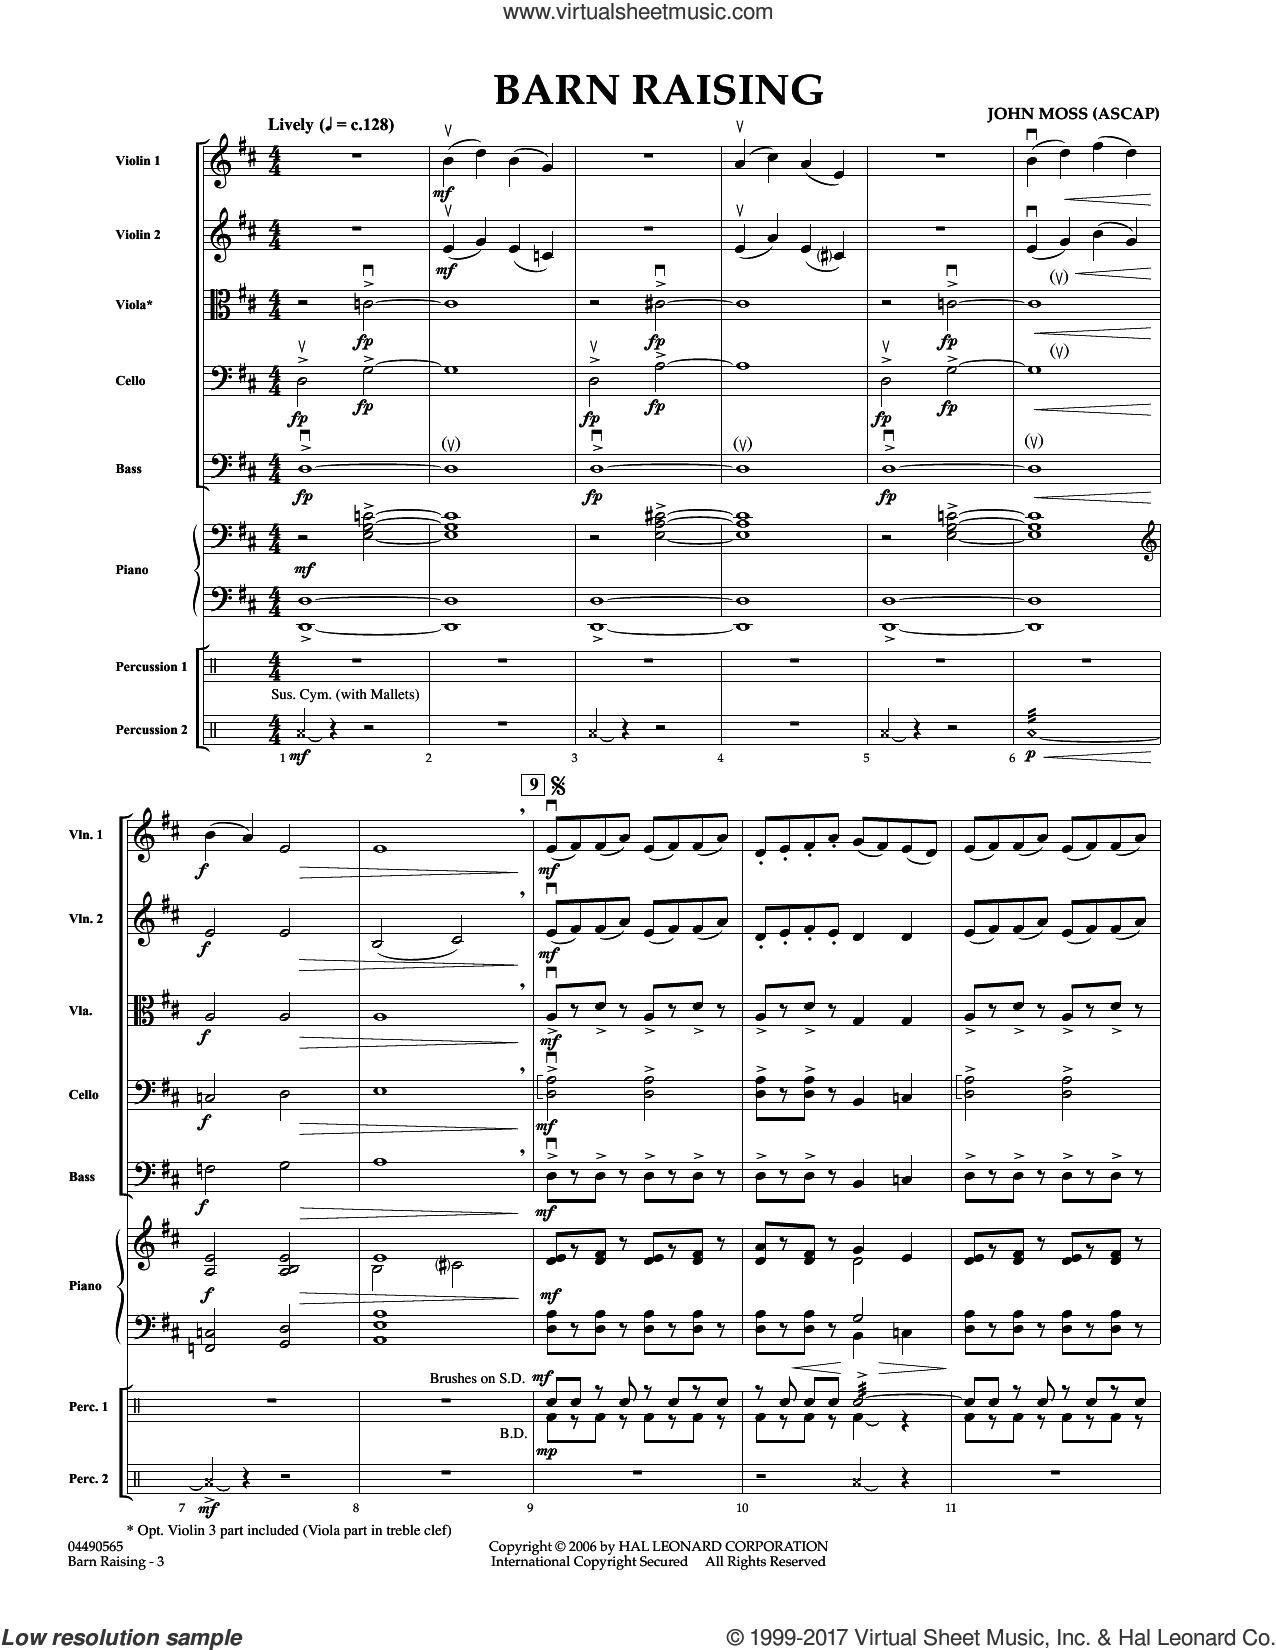 Barn Raising (COMPLETE) sheet music for orchestra by John Moss, intermediate skill level